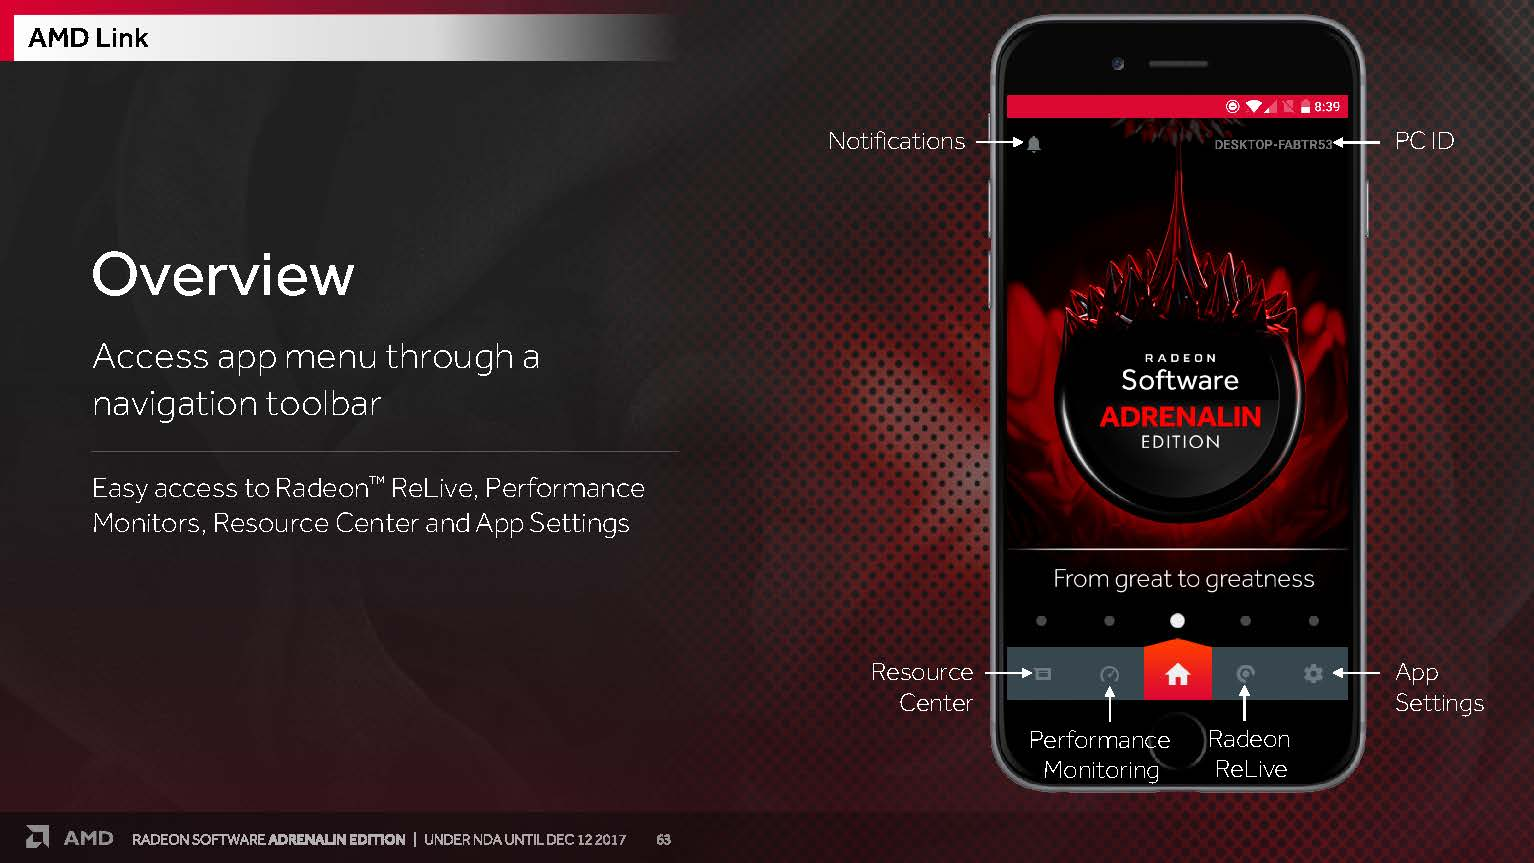 amd radeon software adrenaline edition december press deck Page 61